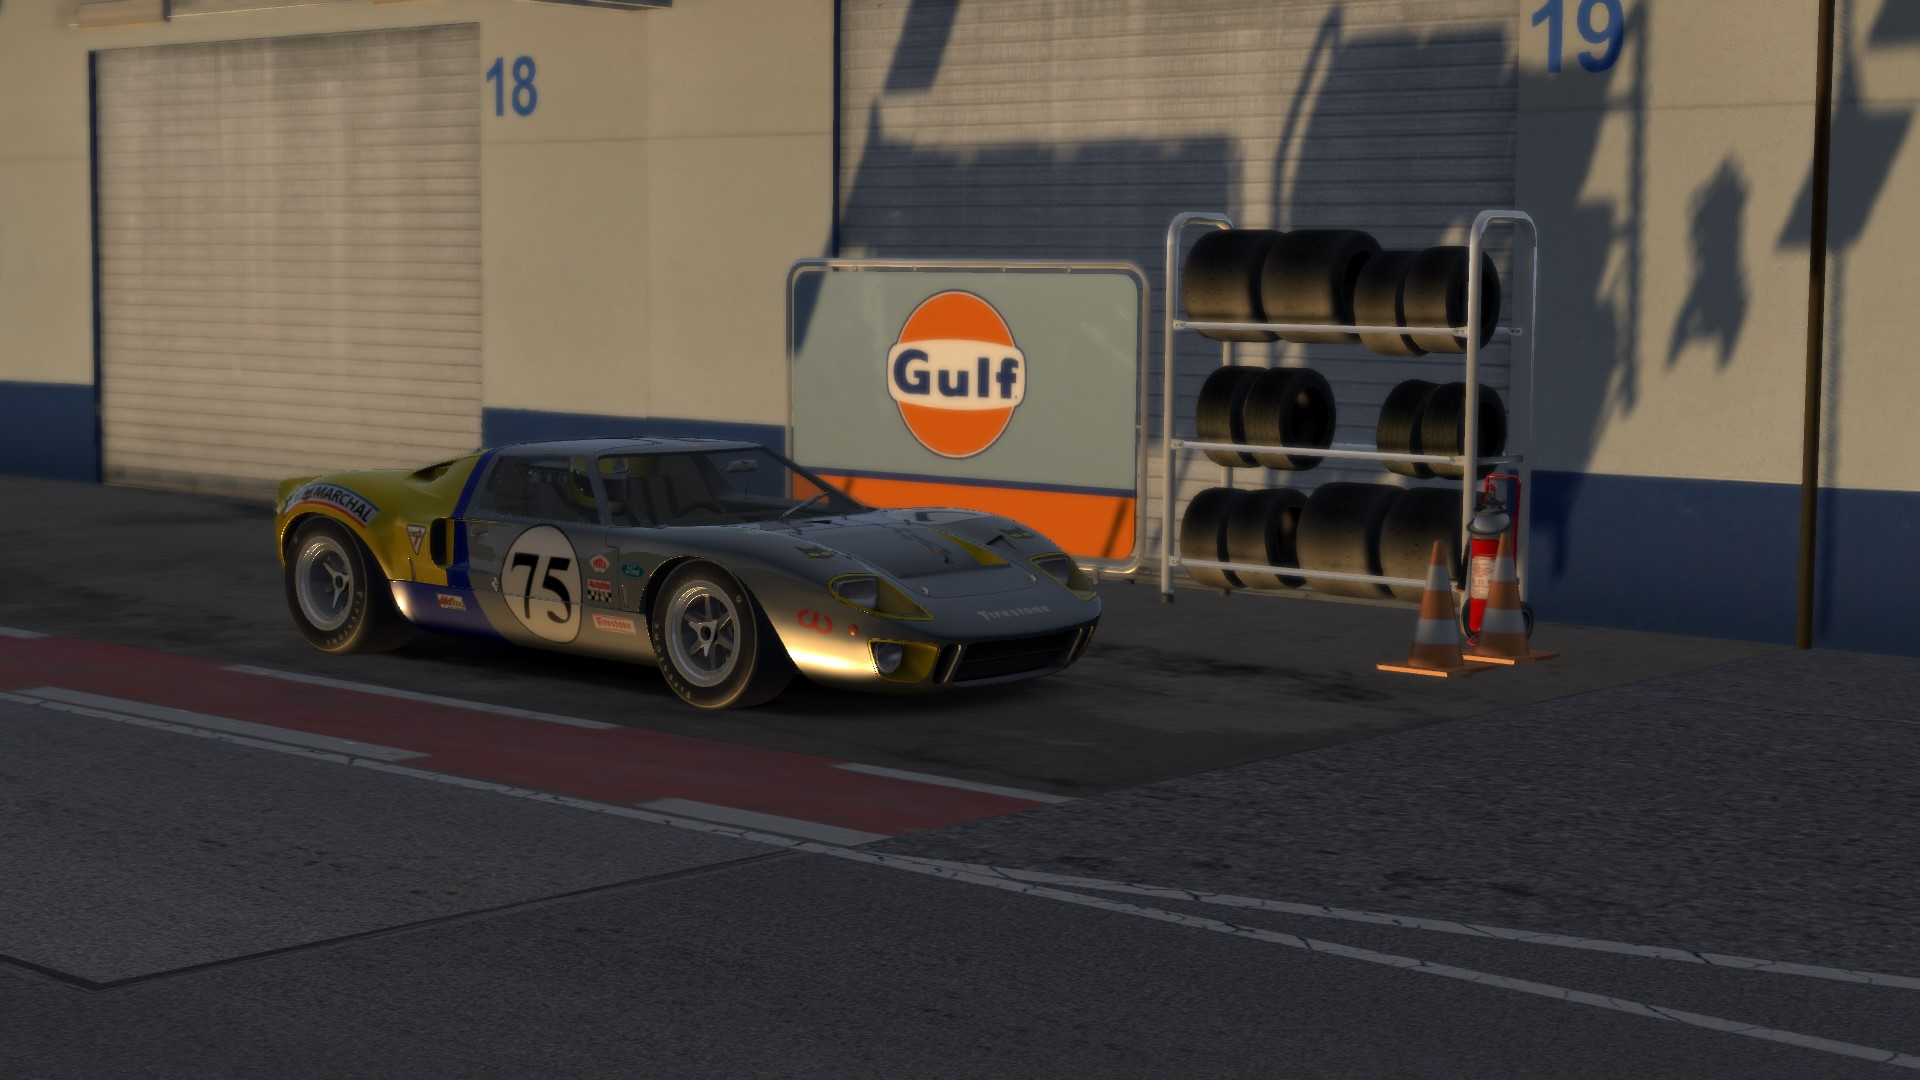 Screenshot_ks_ford_gt40_magione_12-10-115-19-15-59.jpg